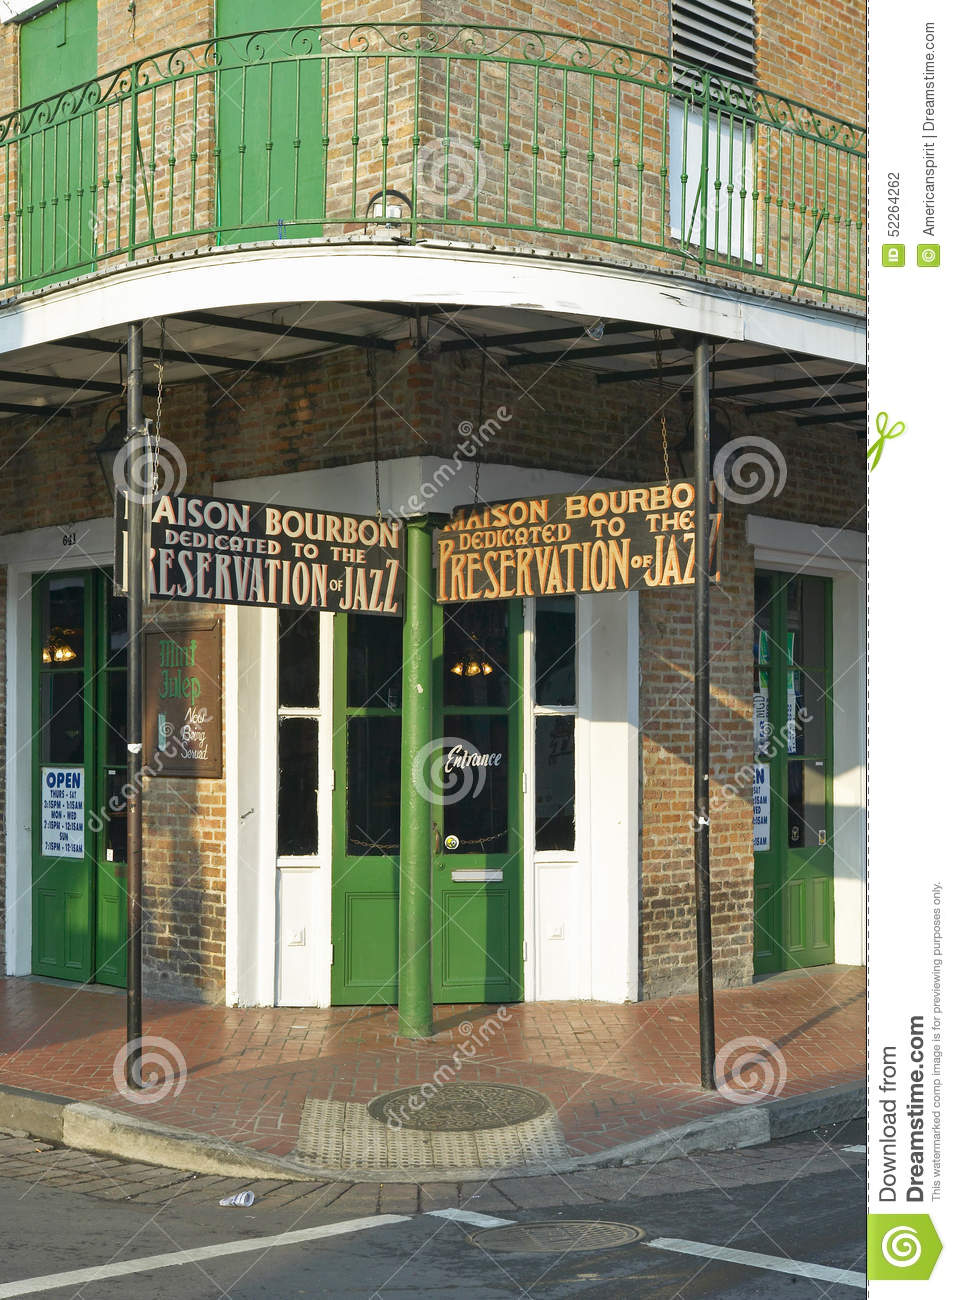 Maison Bourbon Jazz Club With Green Doors In Morning Light Of